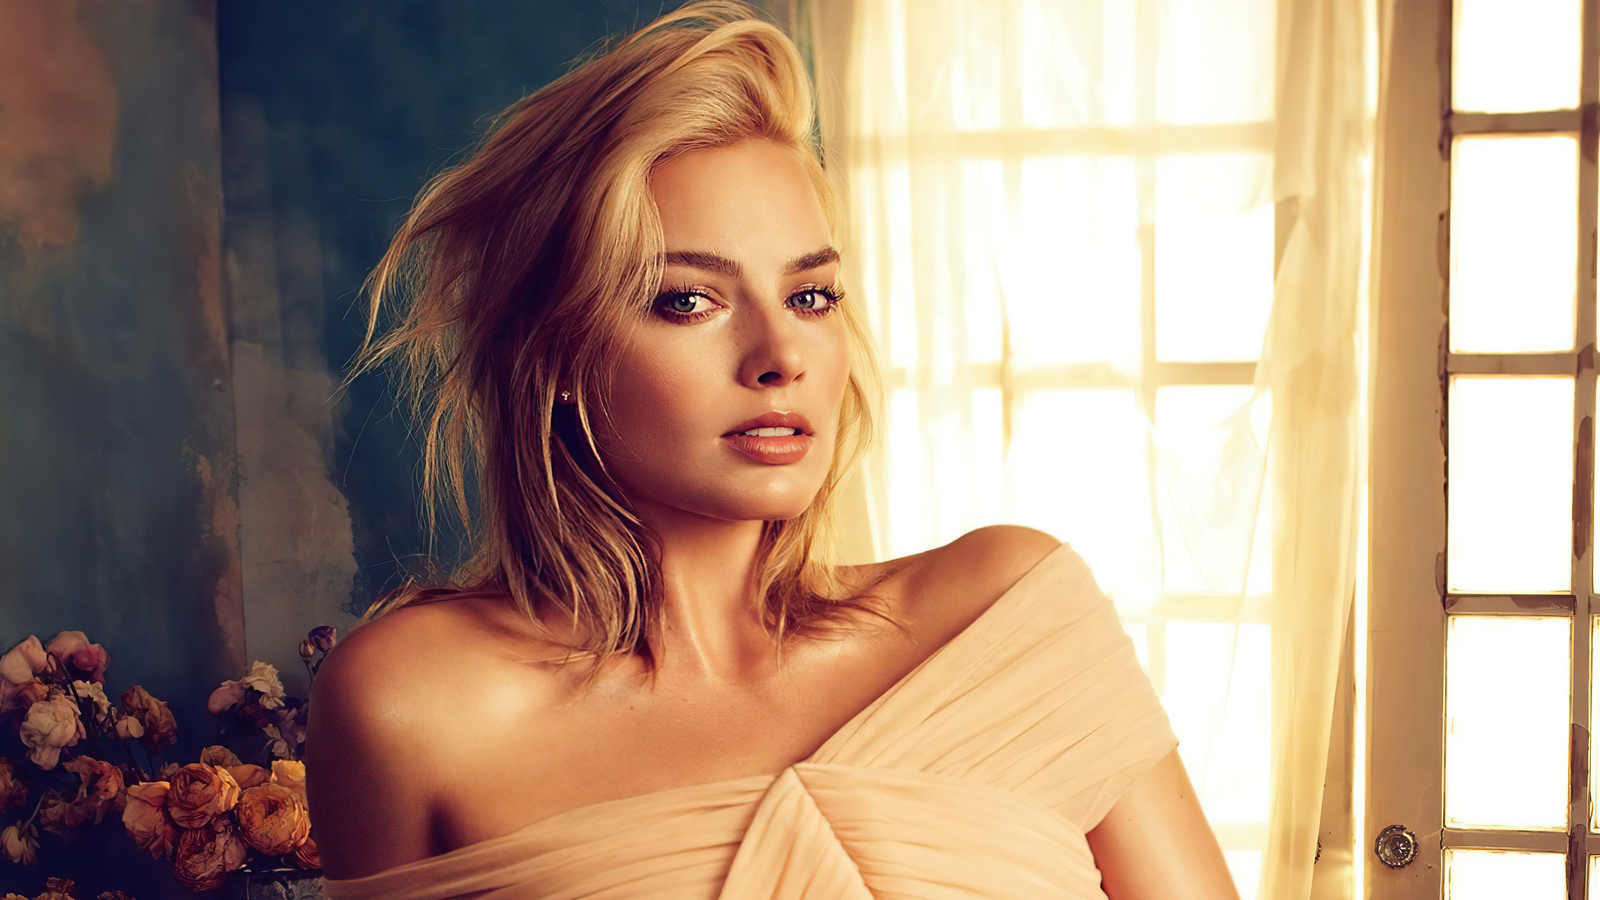 margot-robbie-vogue-magazine-2020-z7.jpg